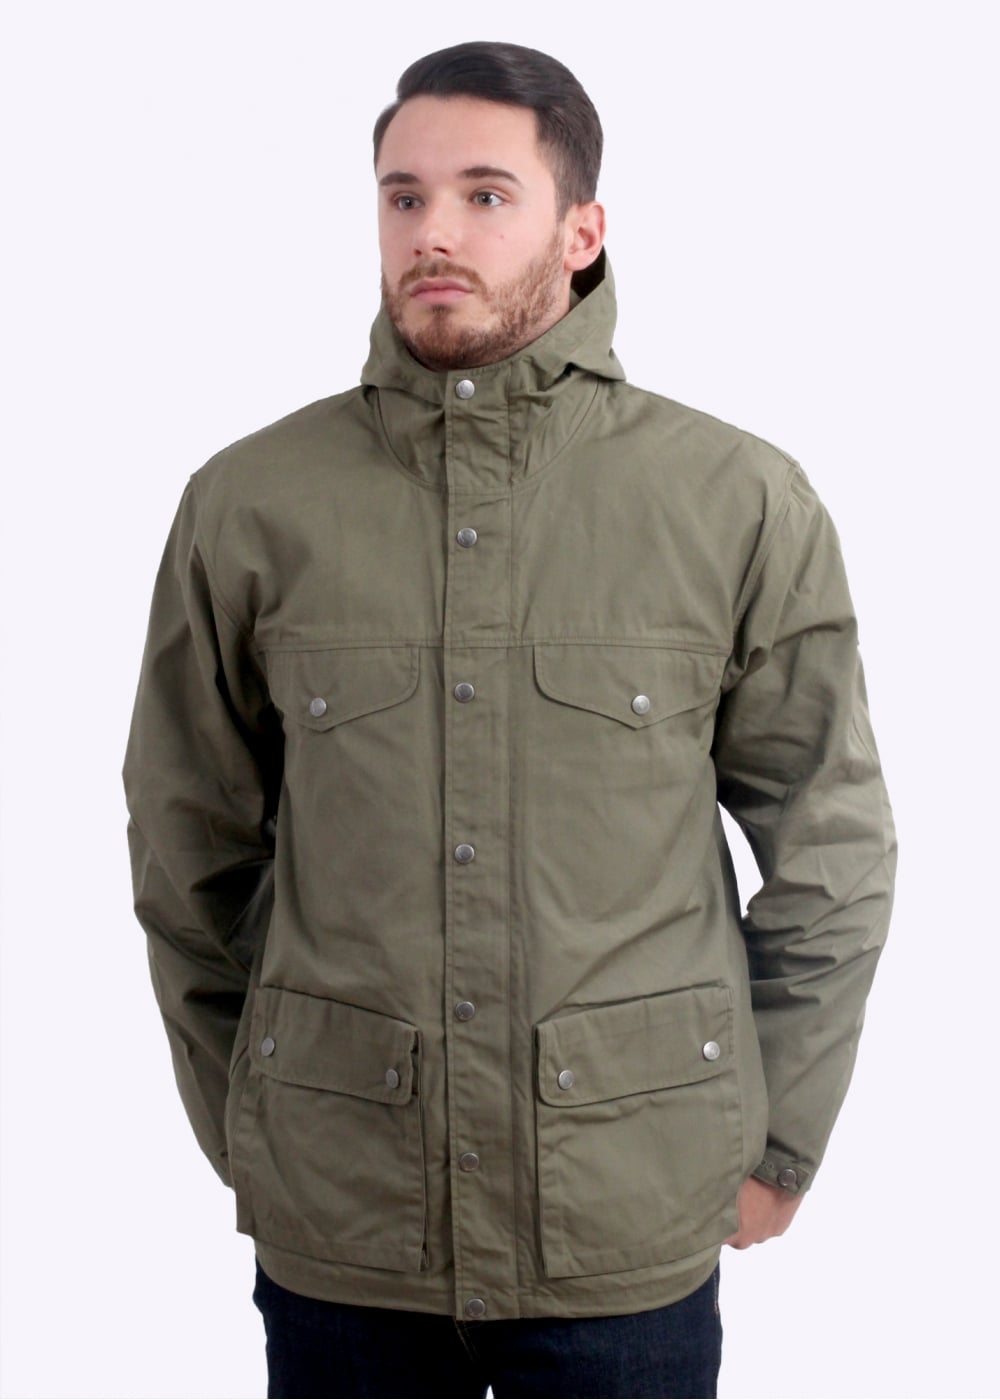 Fjallraven Greenland Jacket - Green - Triads Mens from Triads UK 6a8bac11653